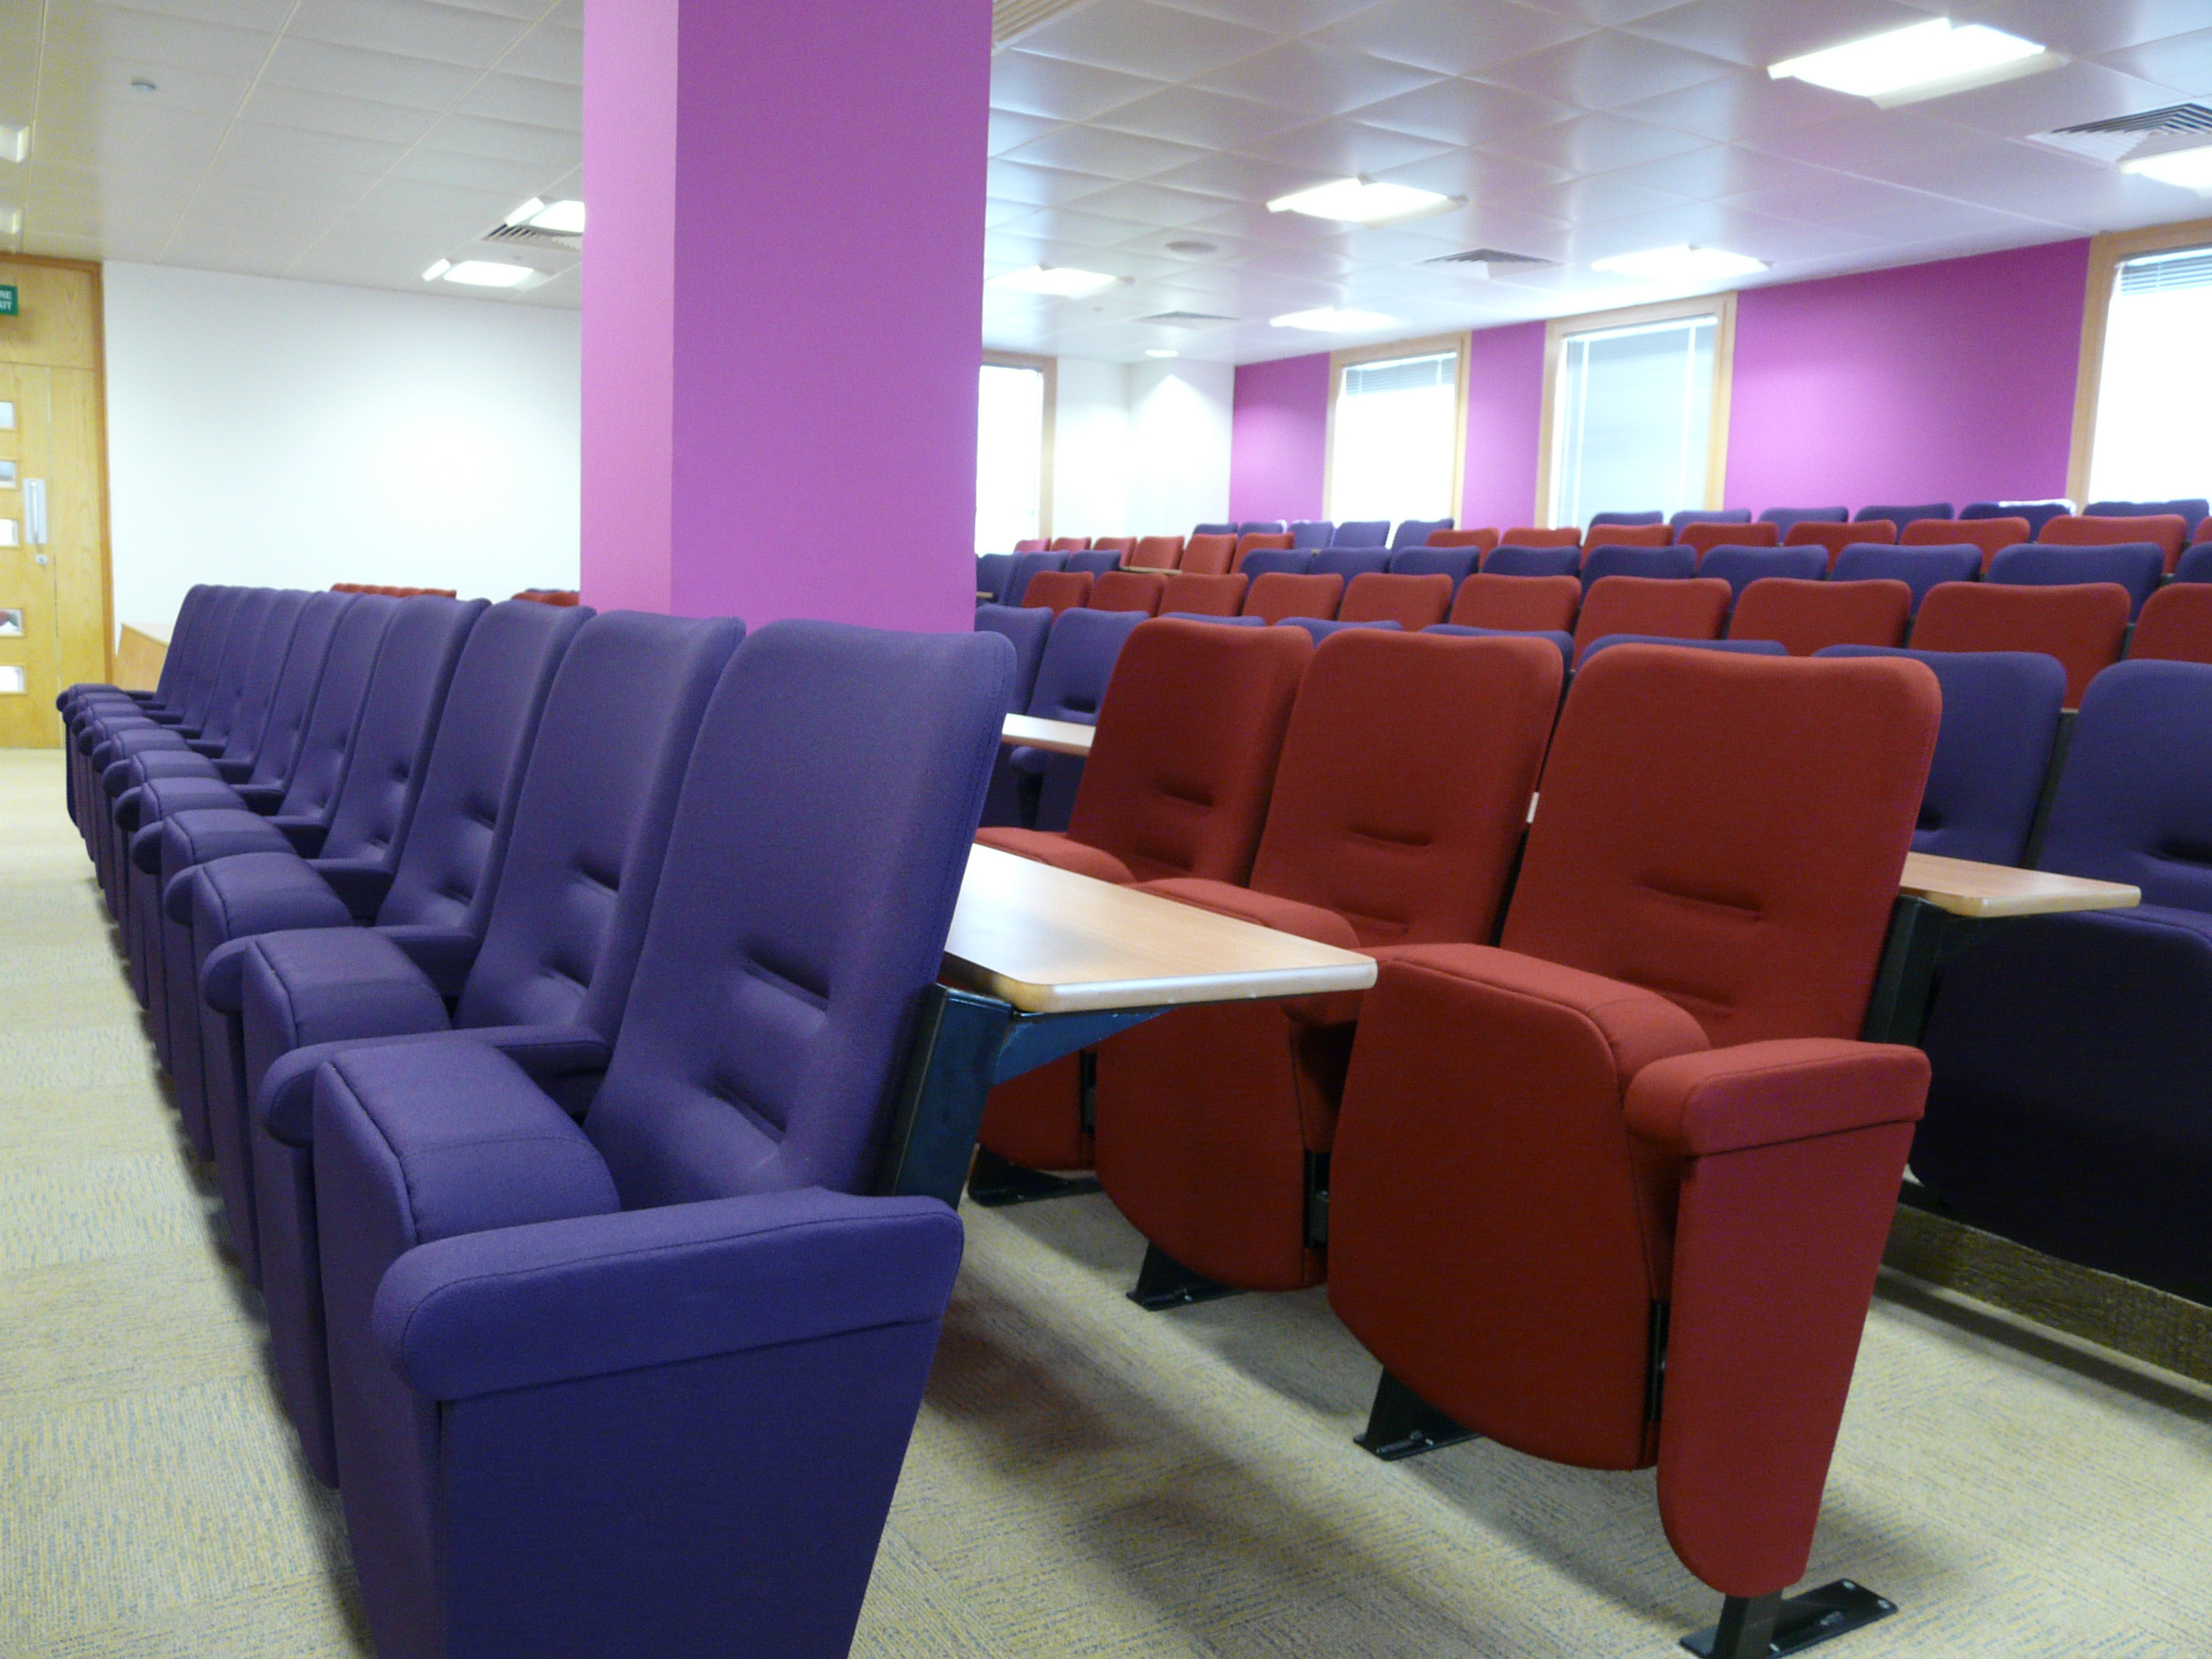 Evertaut lecture theatre seating